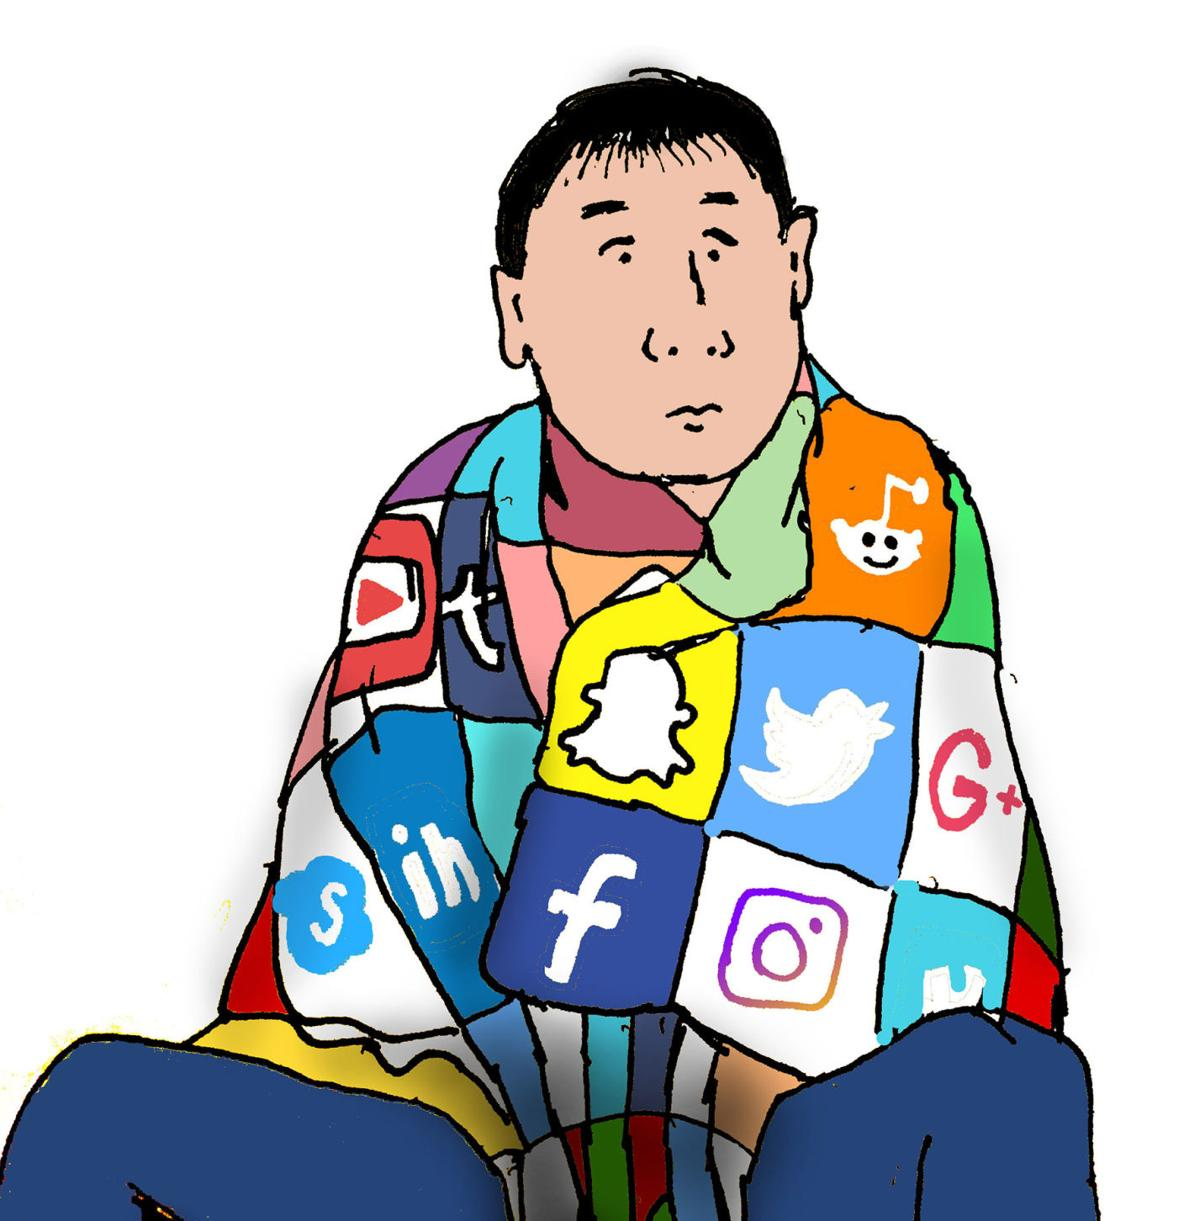 Social media obsession, social media obsession, journey of life continues